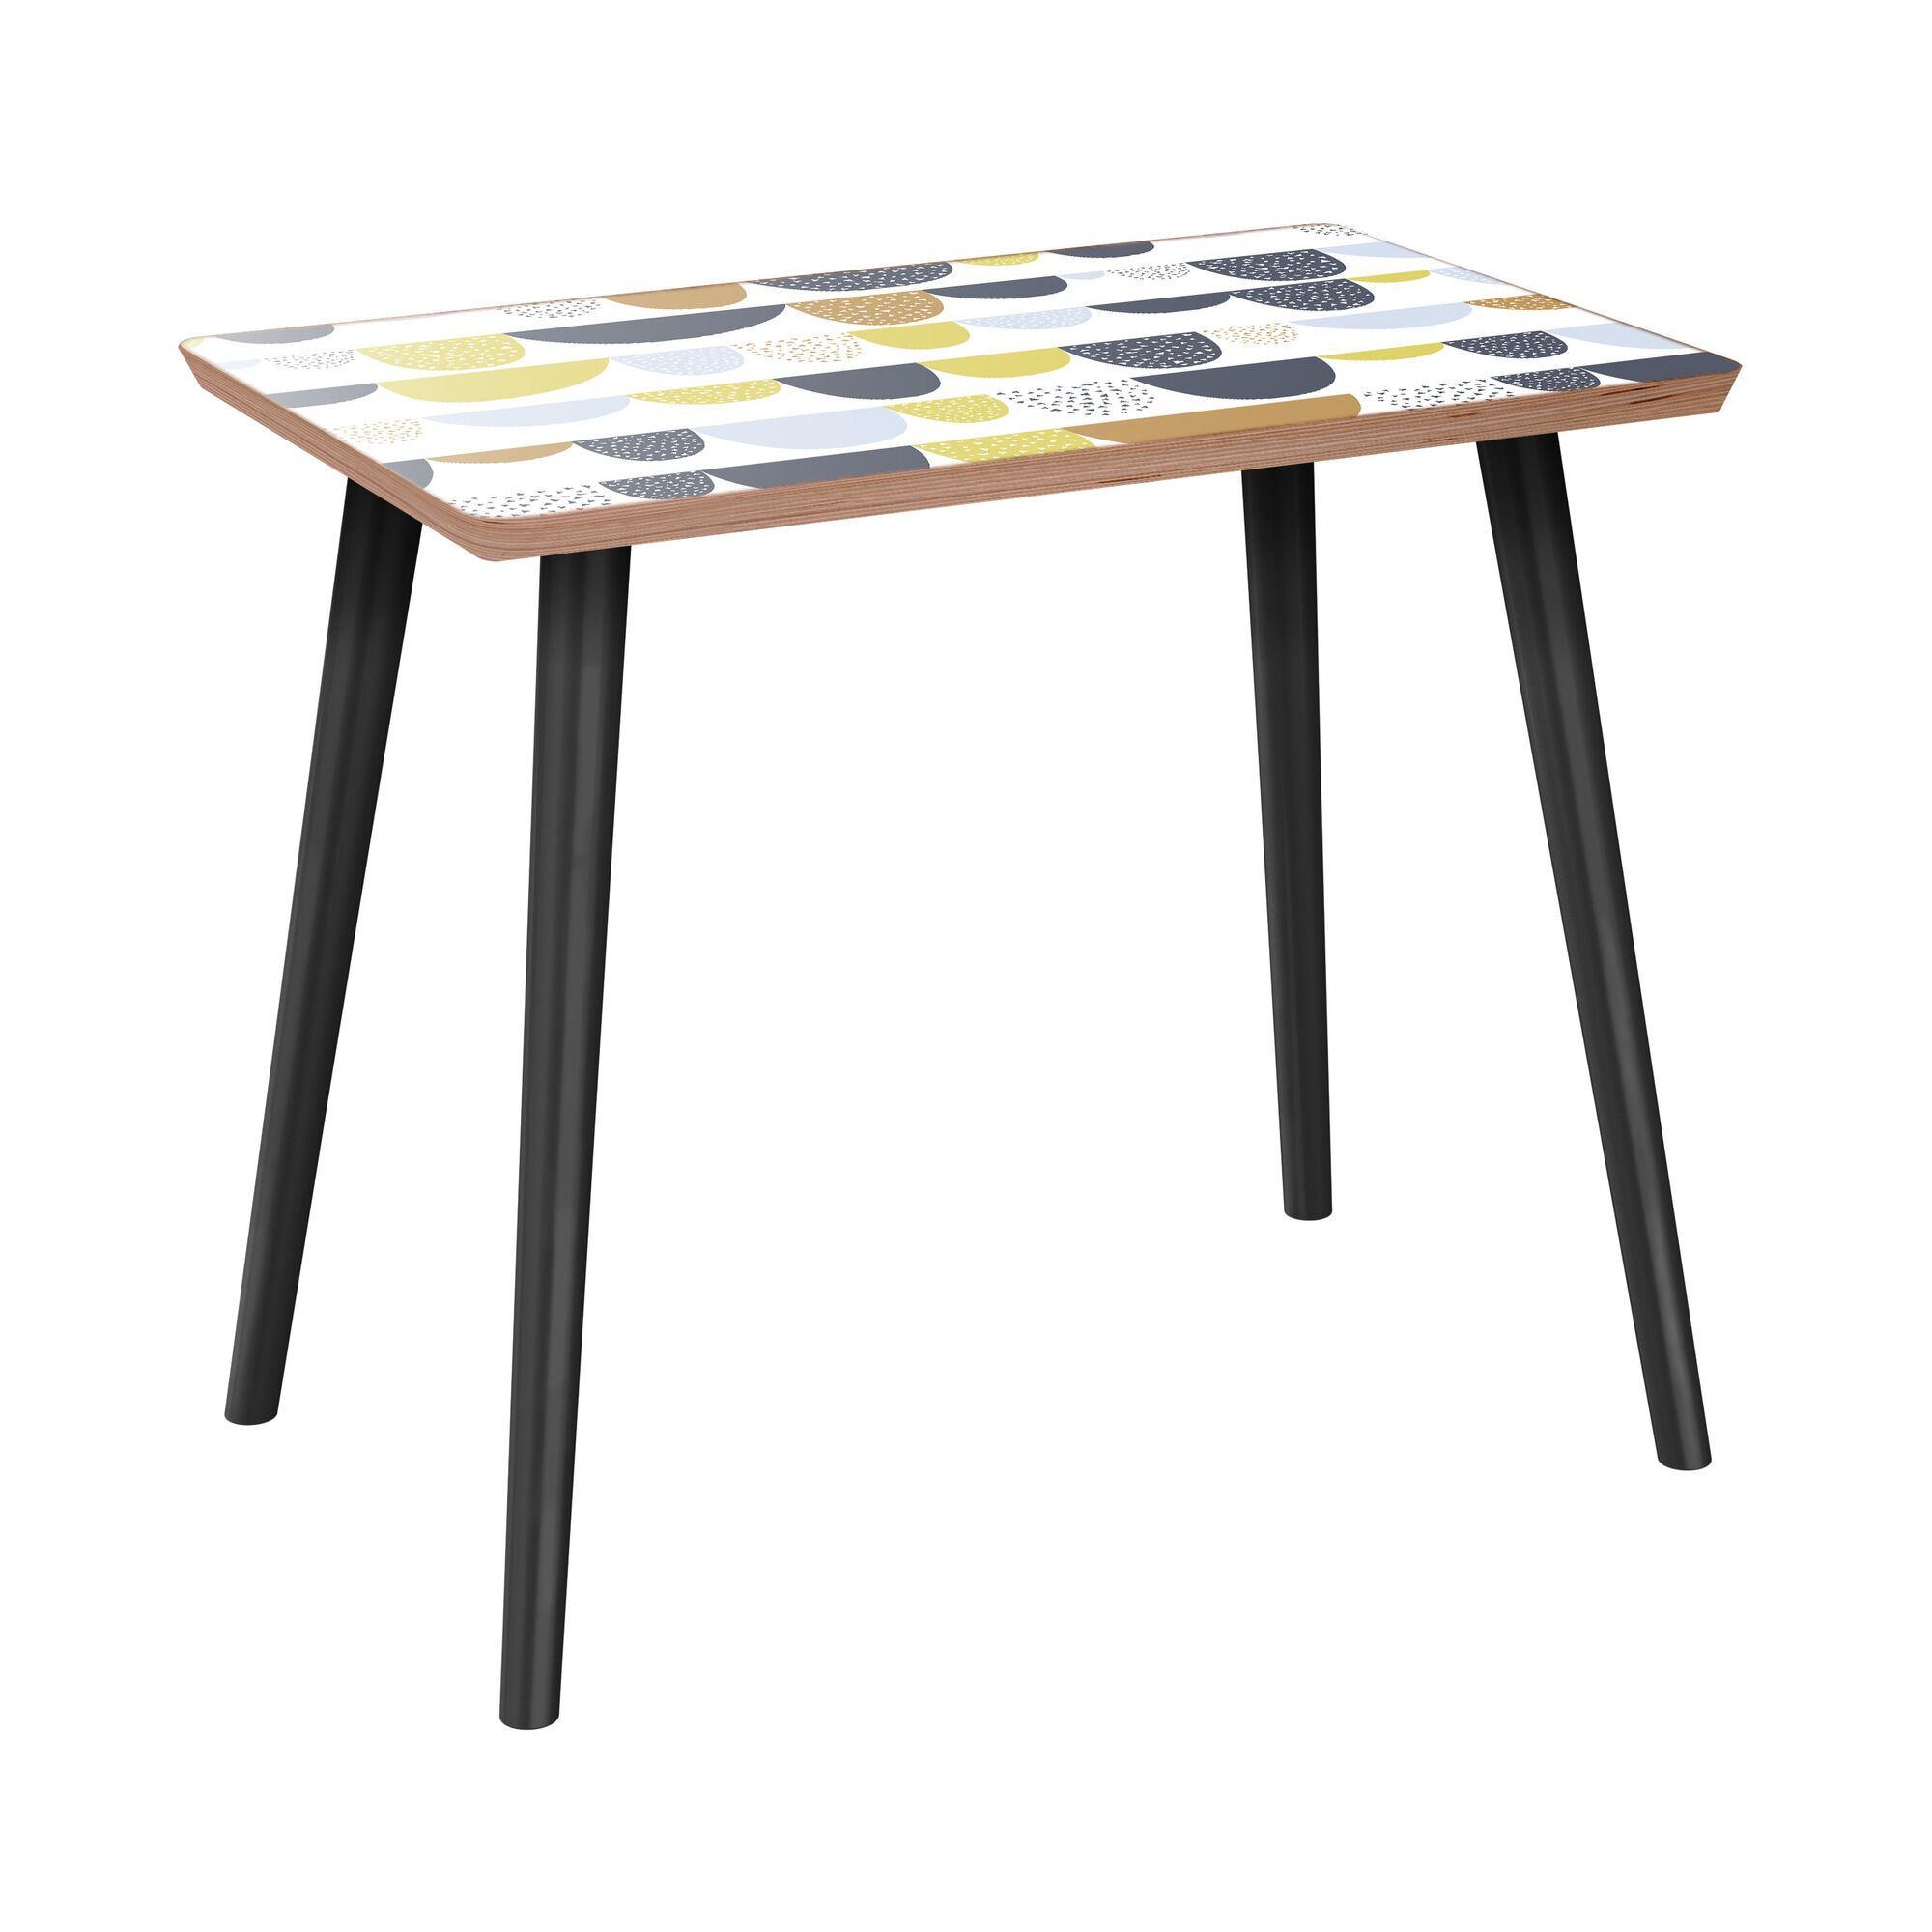 Iyana End Table Table Base Color: Black, Table Top Color: Walnut